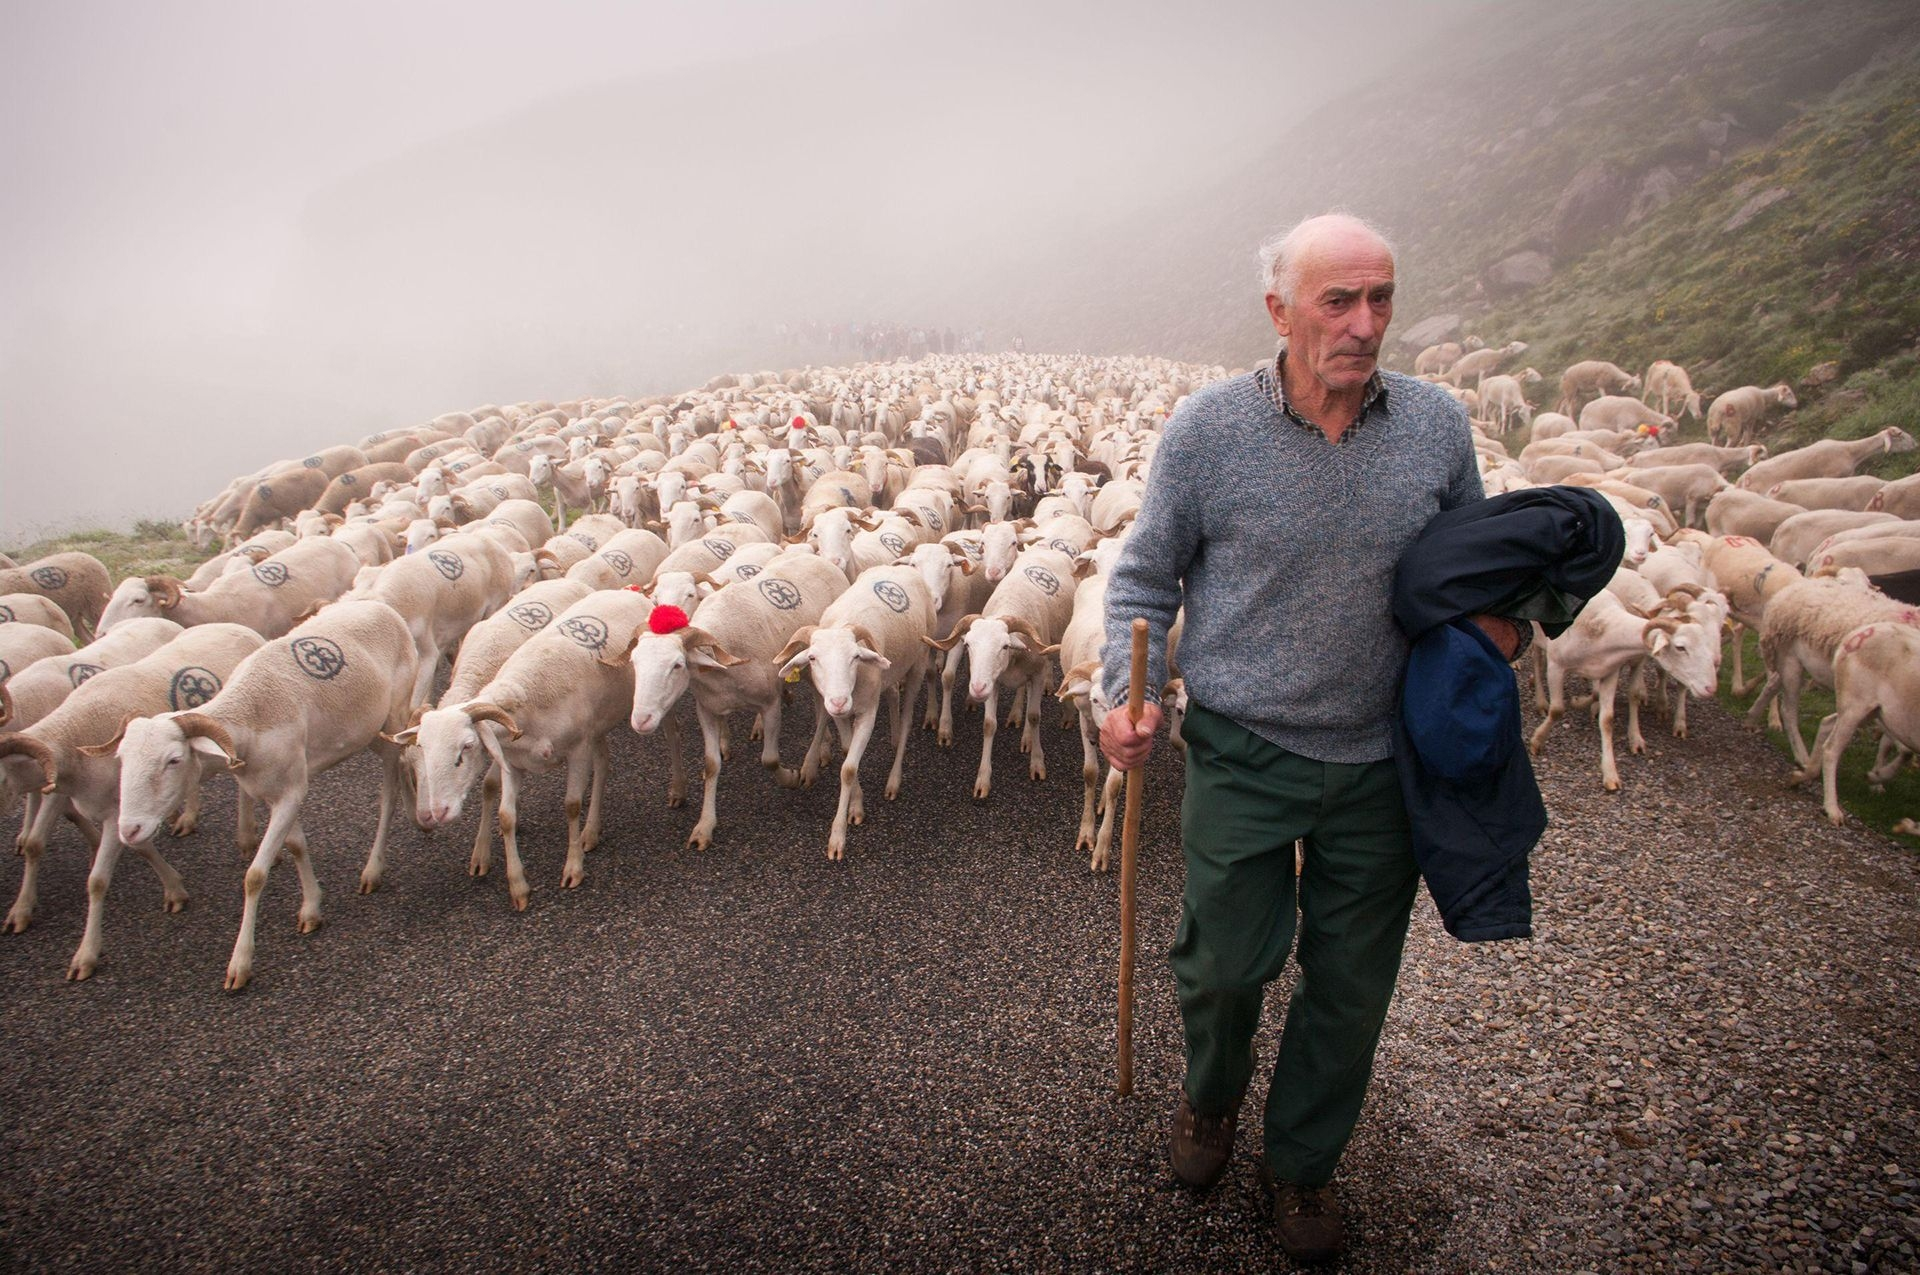 Photograph by Martin Castellan, National Geographic